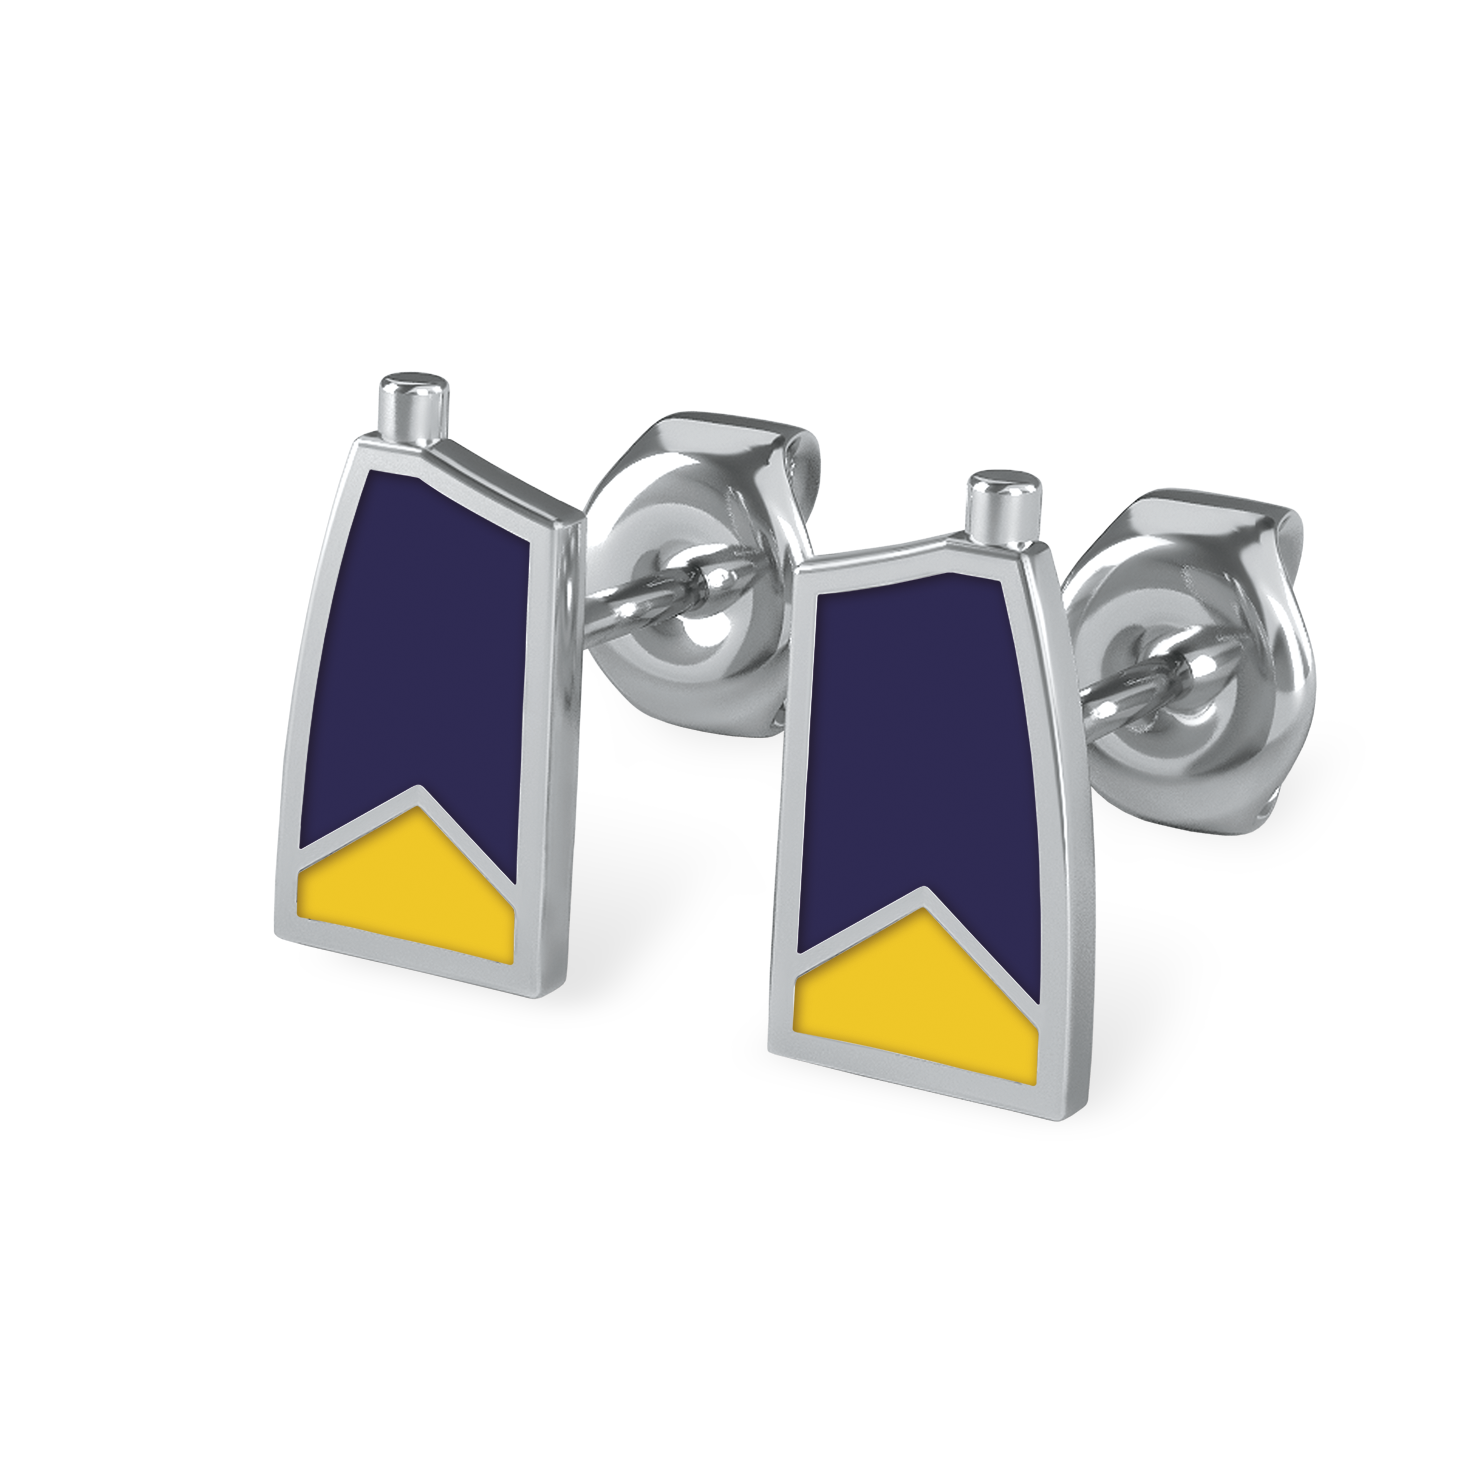 BCC Earrings - Strokeside Designs Rowing jewelry- Rowing Gifts Ideas- Rowing Coach Gifts